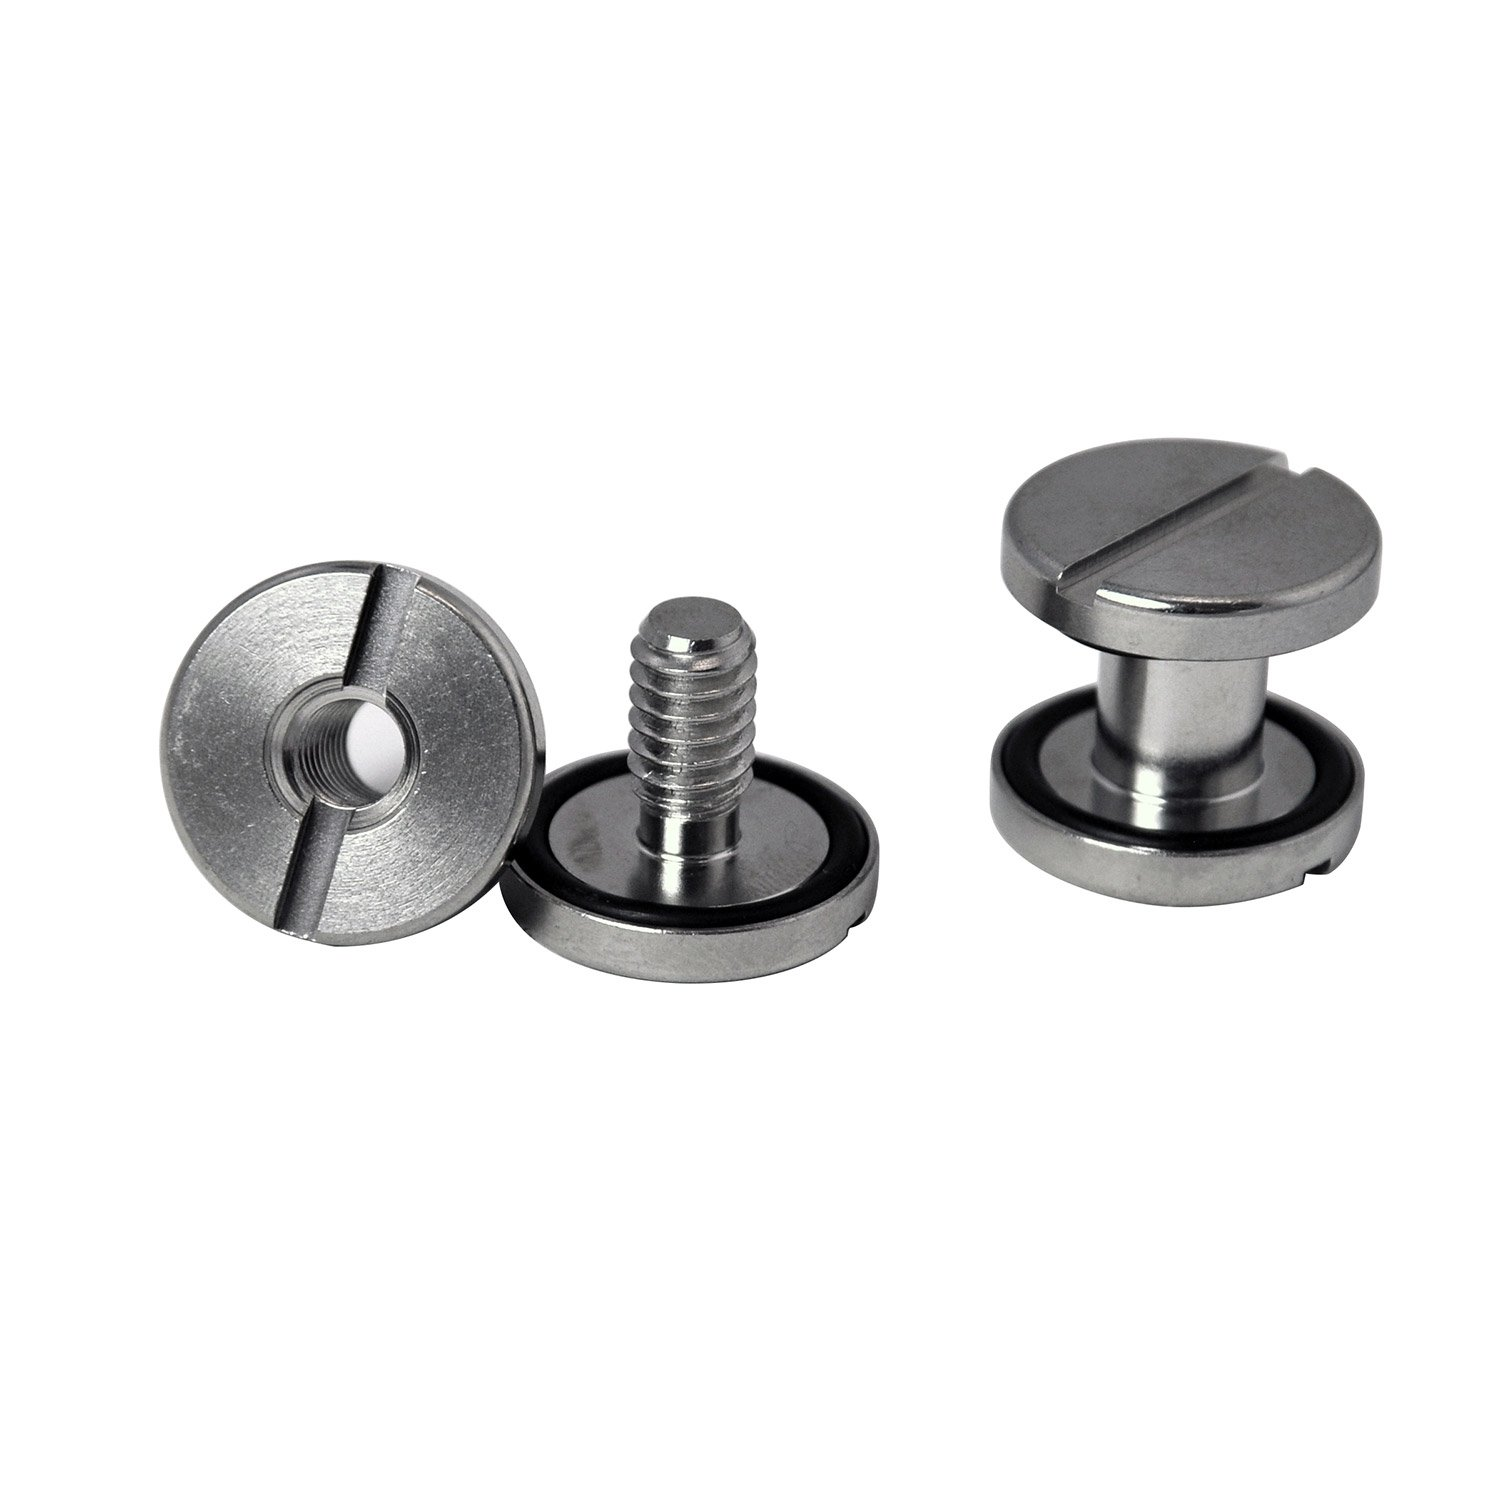 Apeks By Aqua Lung 3/8 Stainless Steel Book Screws by Apeks